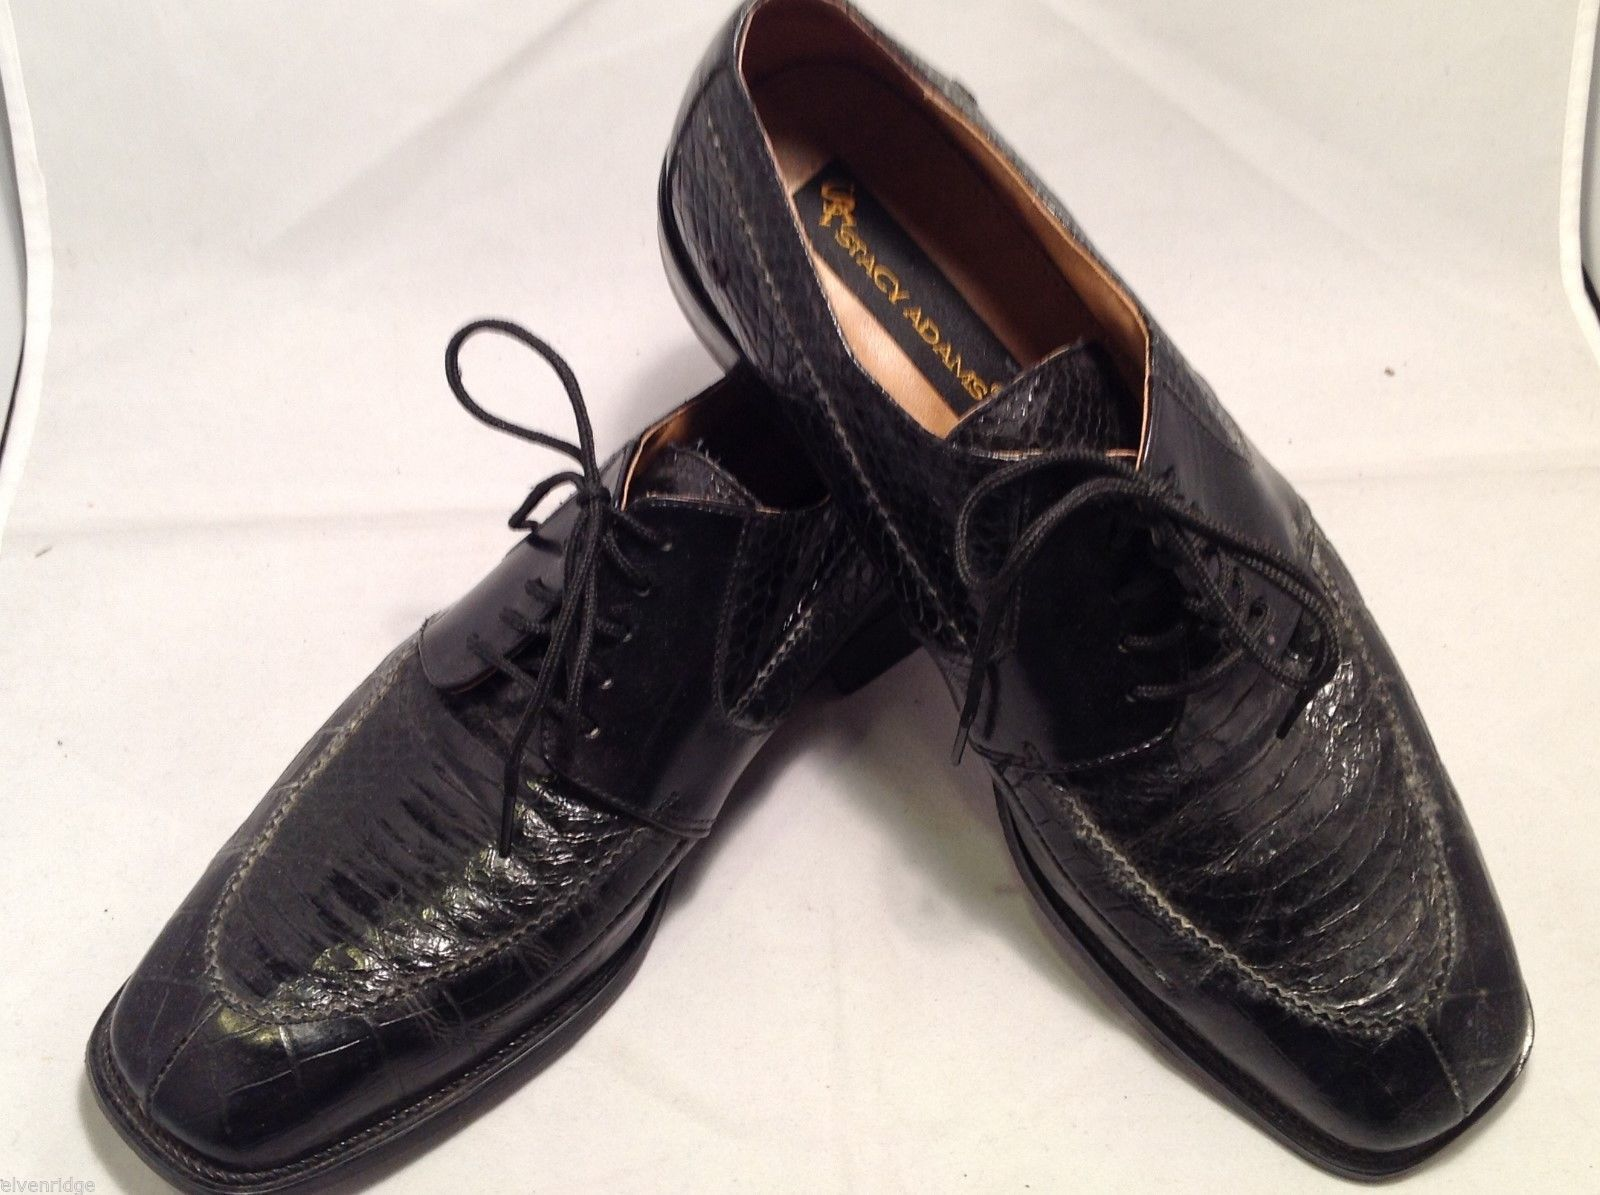 Stacy Adams Mens Black Genuine Snake Dress Shoes, Size 9.5